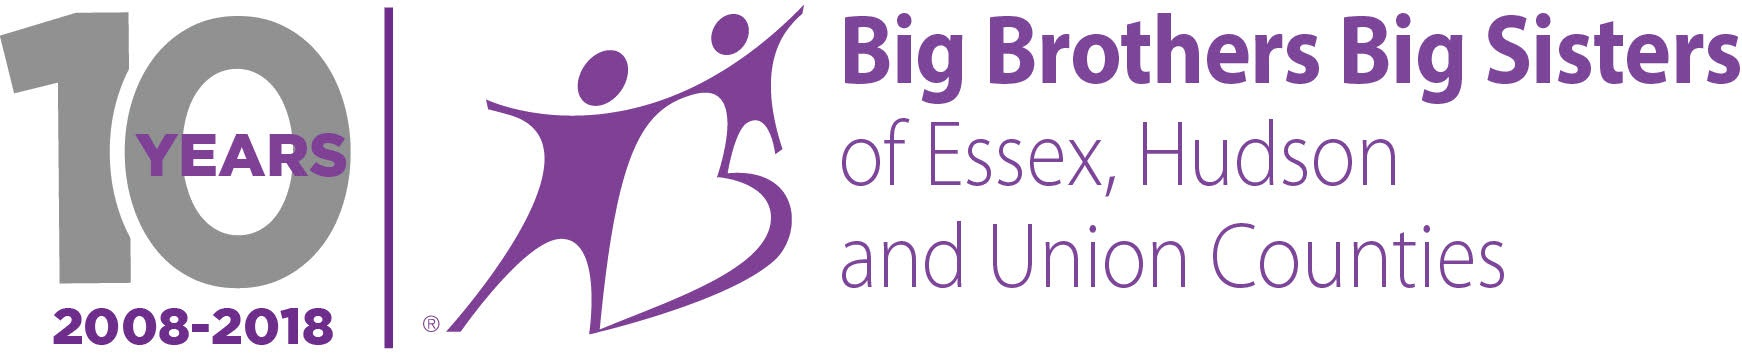 Big Brothers Big Sisters of Essex, Hudson & Union Counties